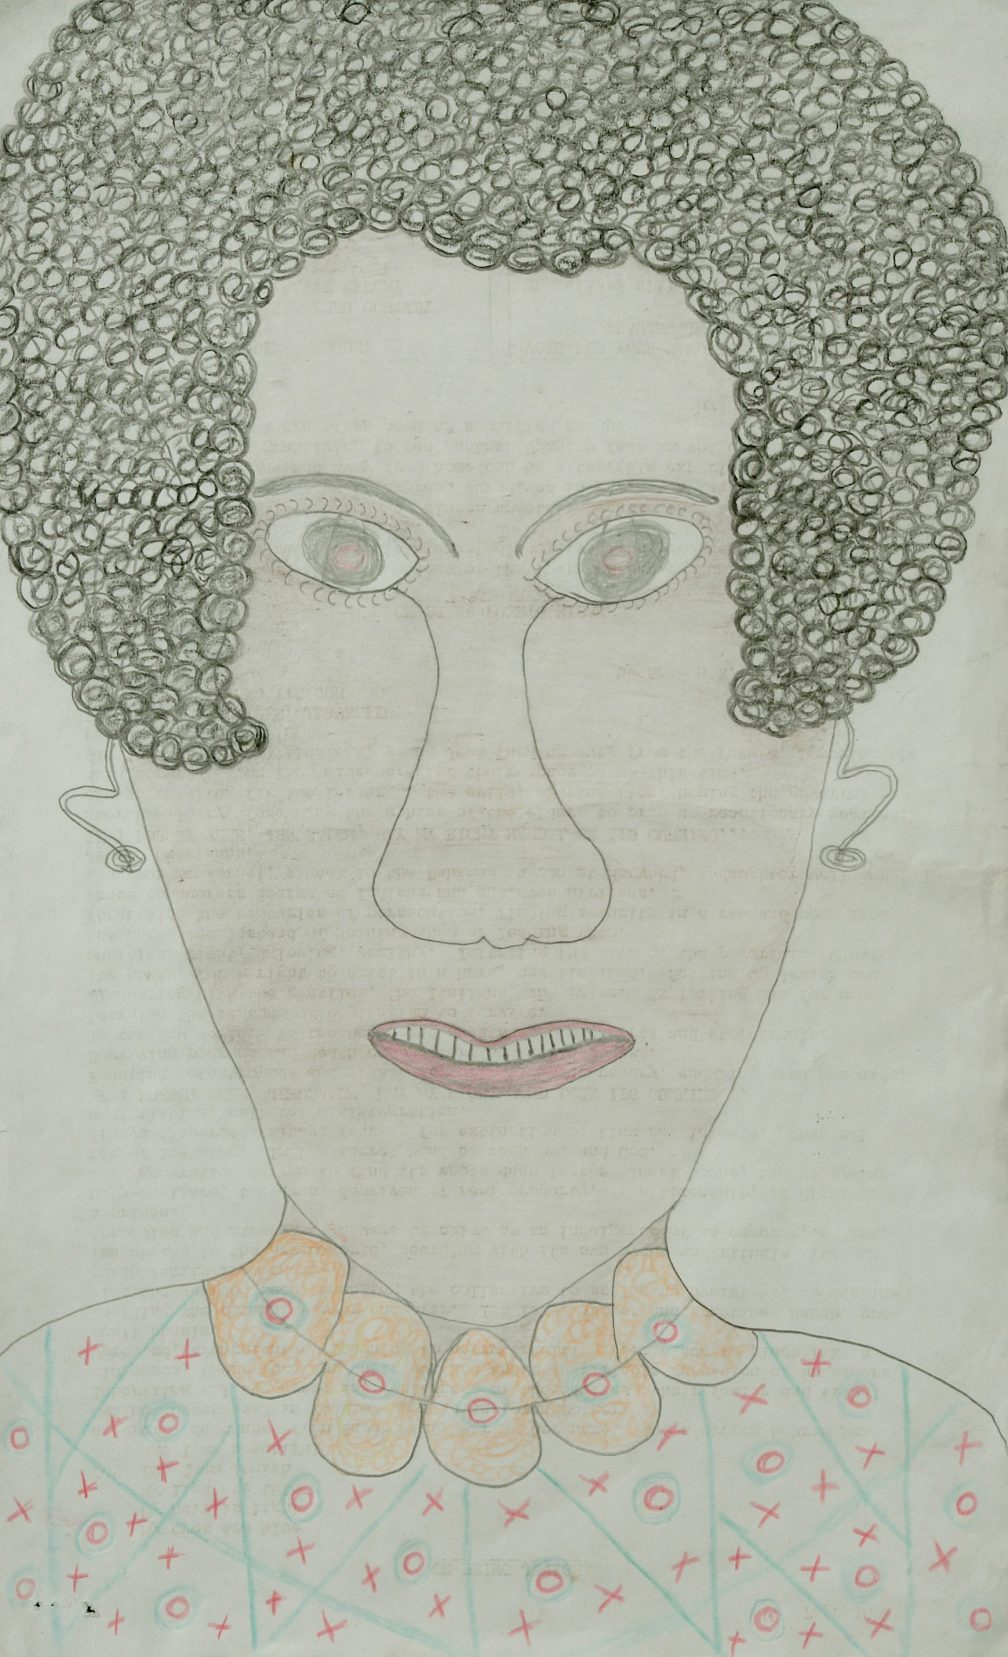 Inez Nathaniel Walker (African American, 1911-1990). Untitled (Portrait of woman with necklace). Mixed media on typing paper, 18 1/2 x 13in. (46.99 x 33.02cm). Intuit: The Collection of Intuitive and Outsider Art. Gift of Margaret Robson.